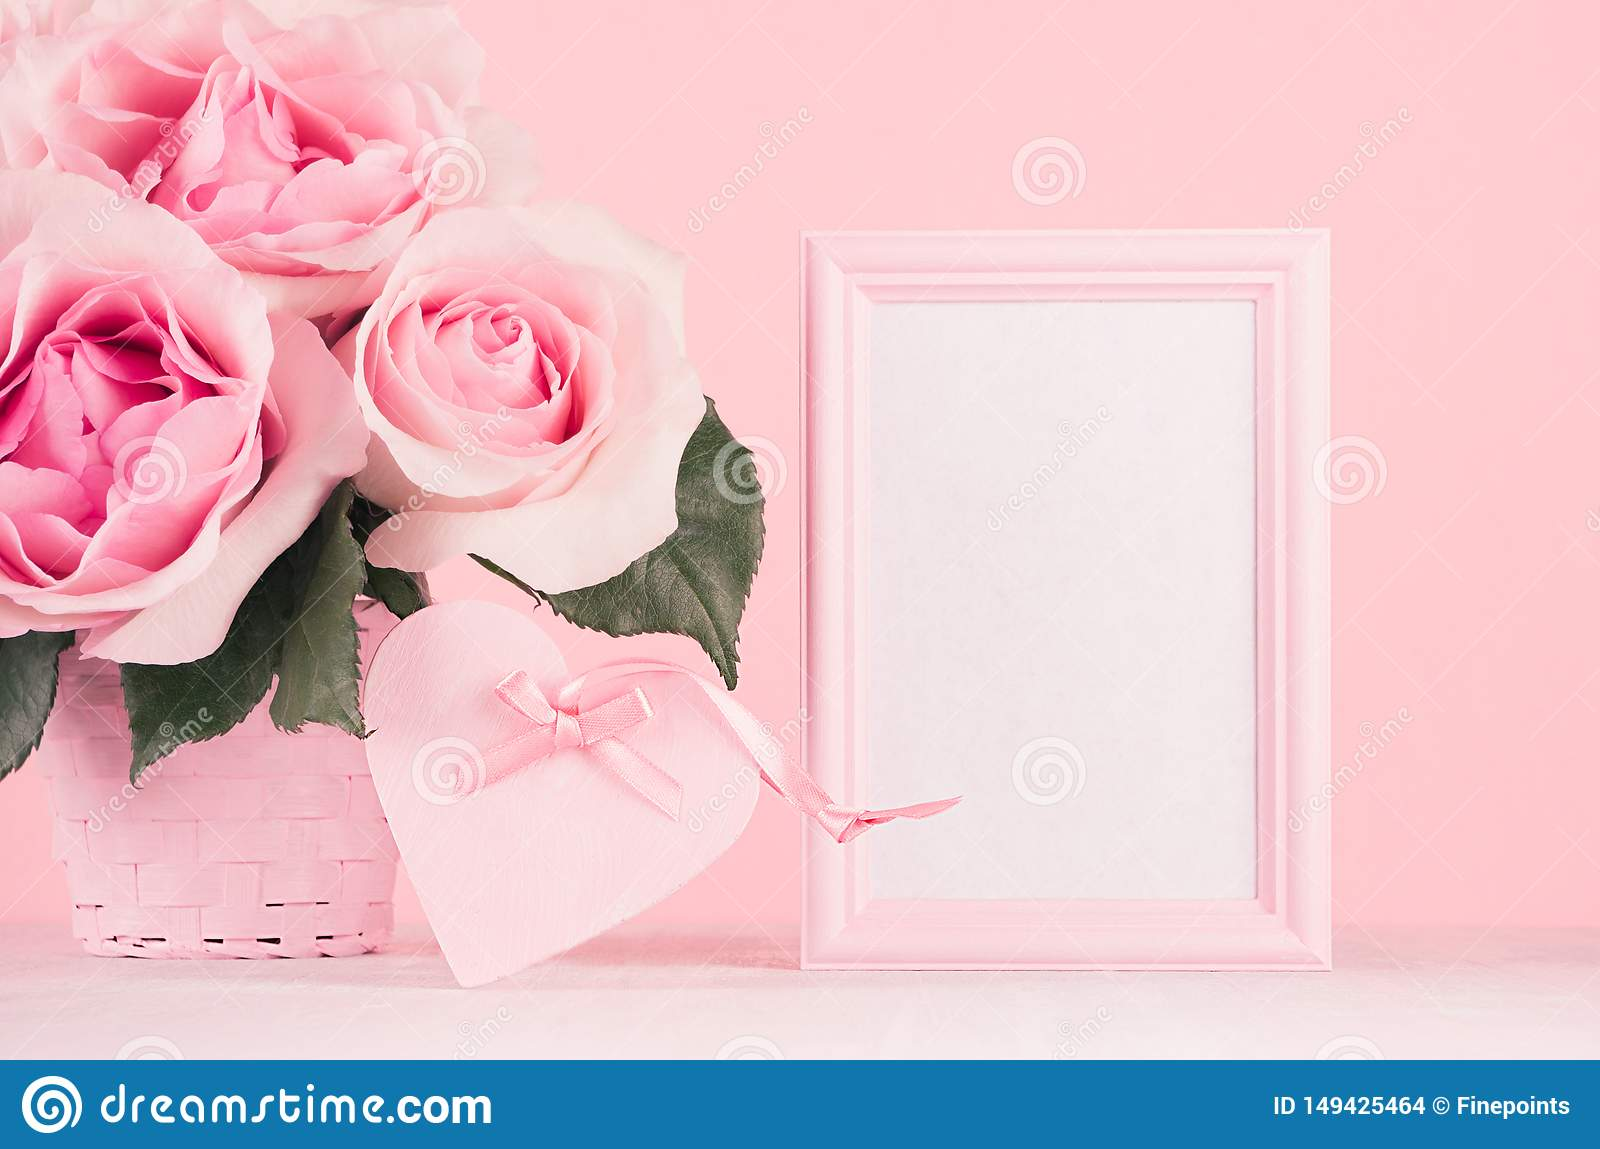 Valentine days background - elegant pastel pink roses bouquet, decorative heart with ribbon, blank frame for advertising on white.